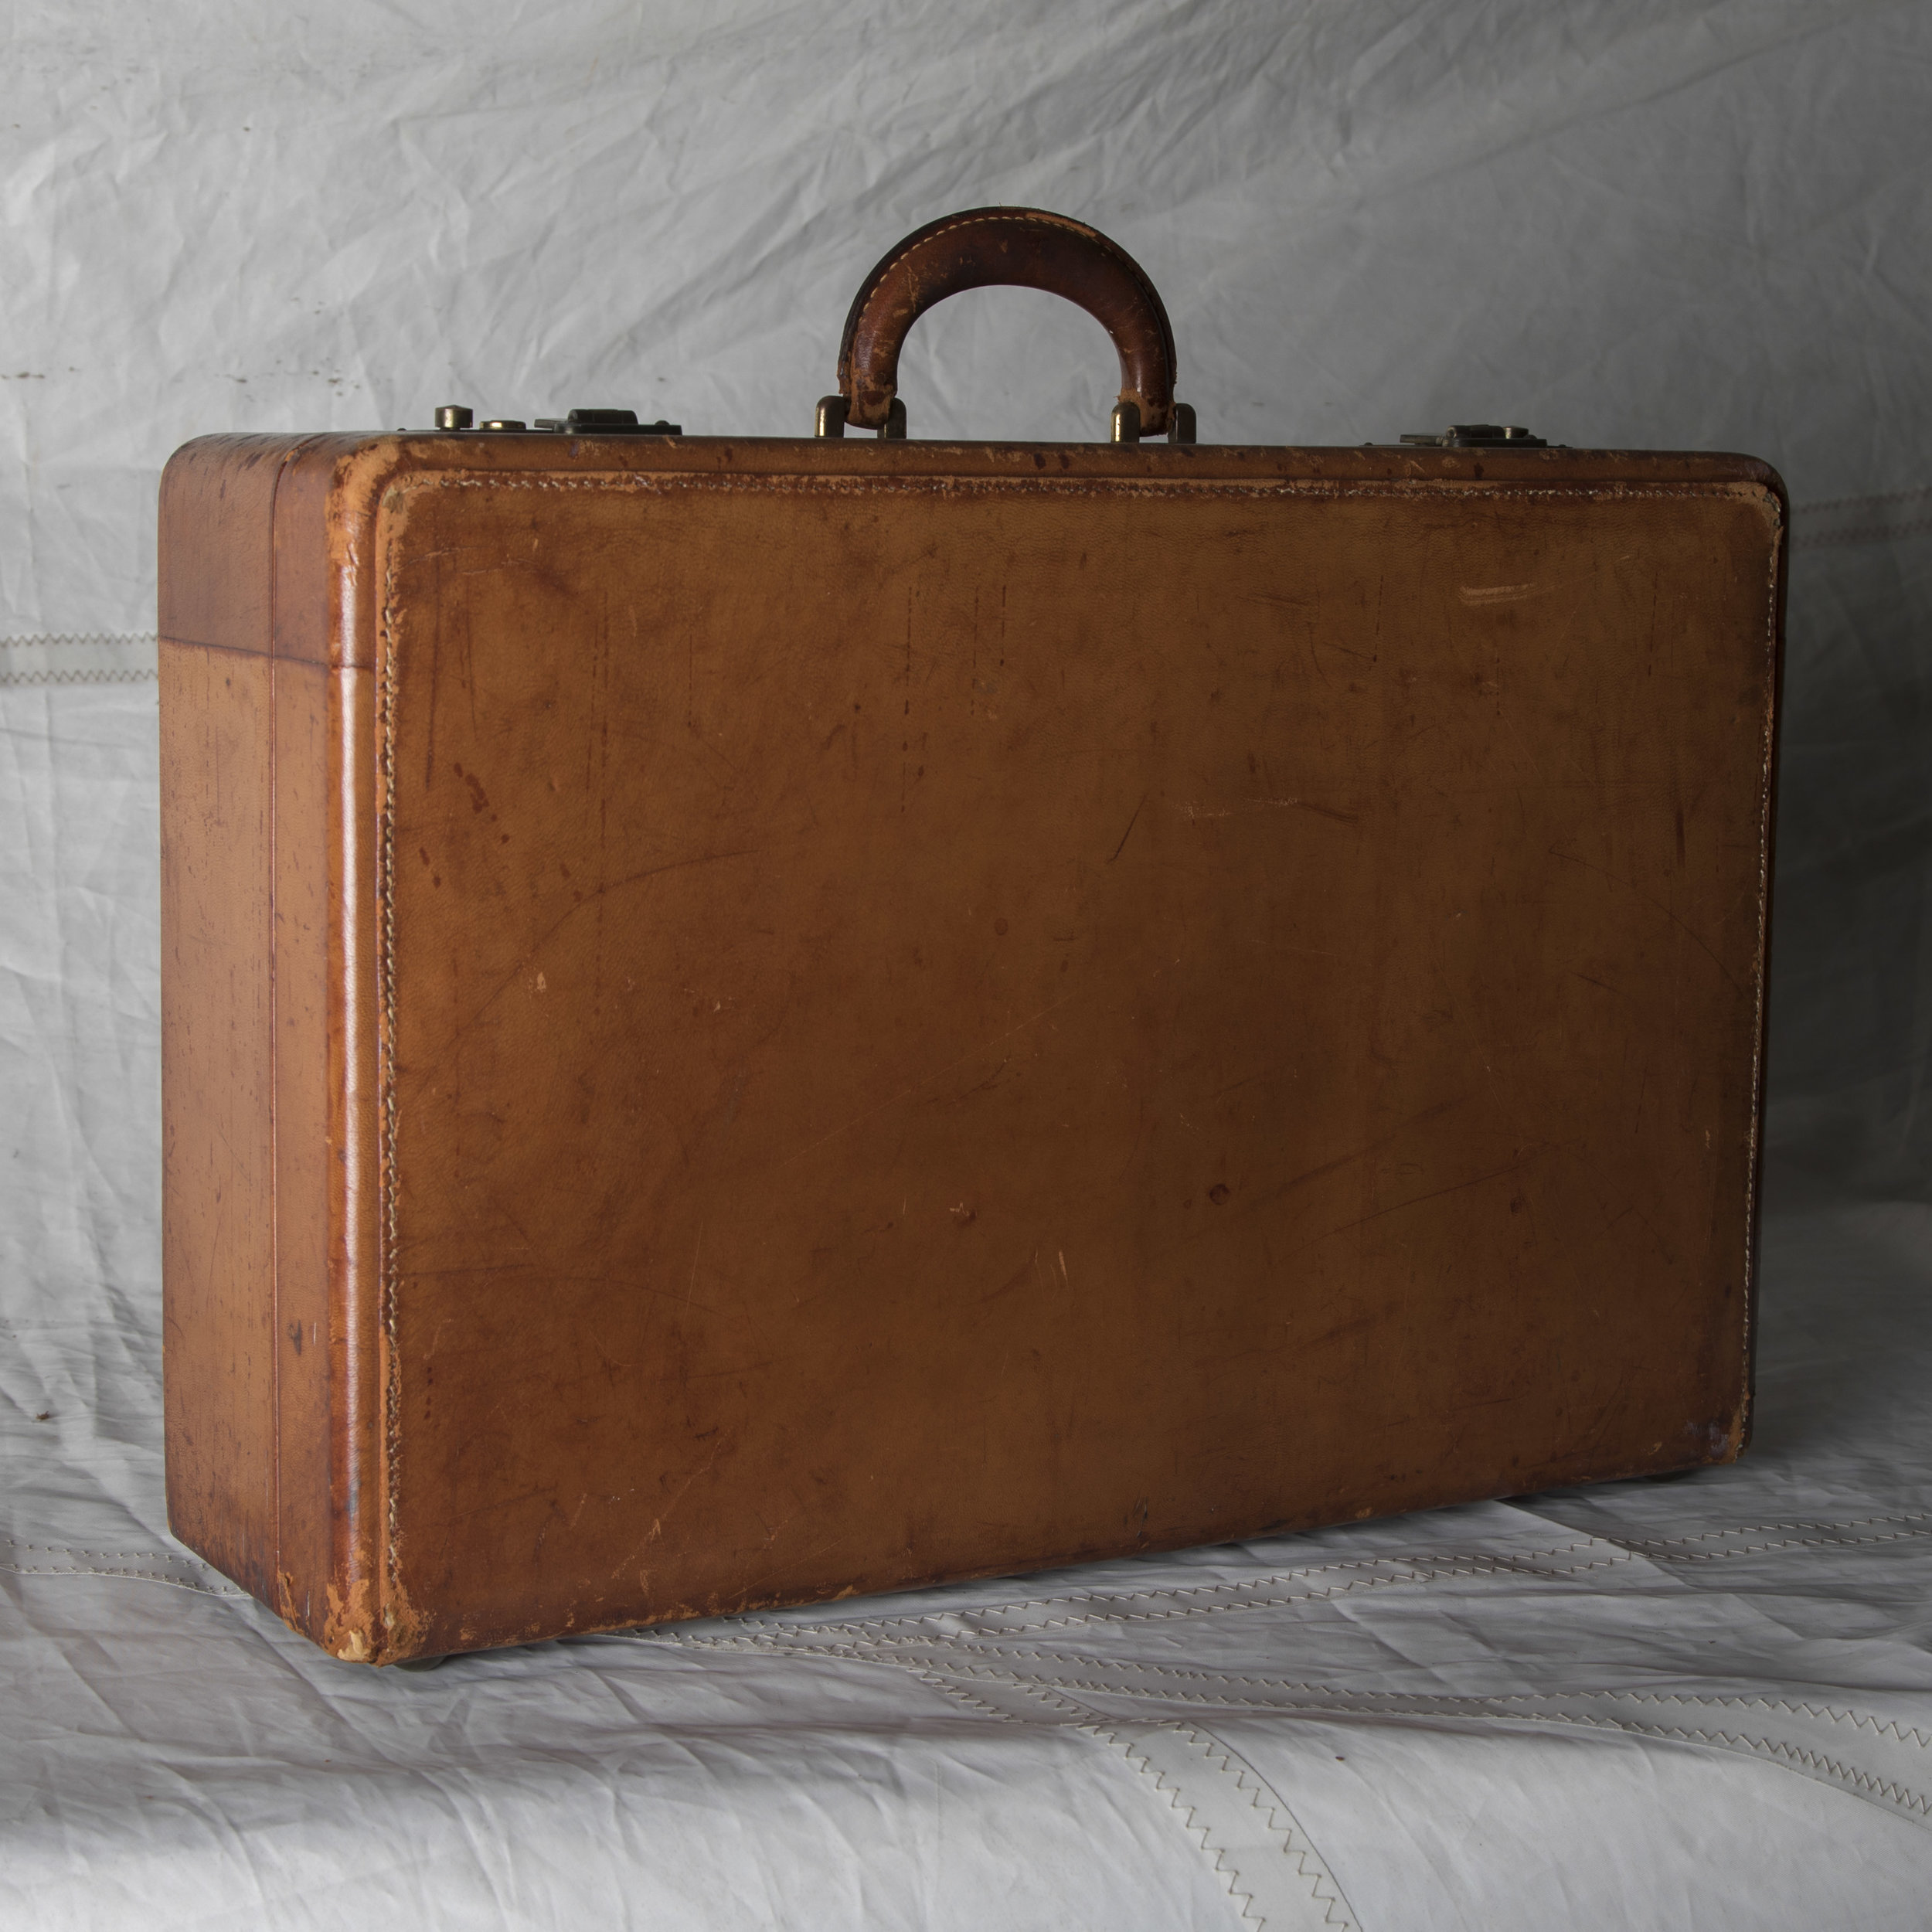 """LUGGAGE 12 VINTAGE BROWN LEATHER SUITCASE 21"""" L x 14.5"""" W x 7"""" D"""